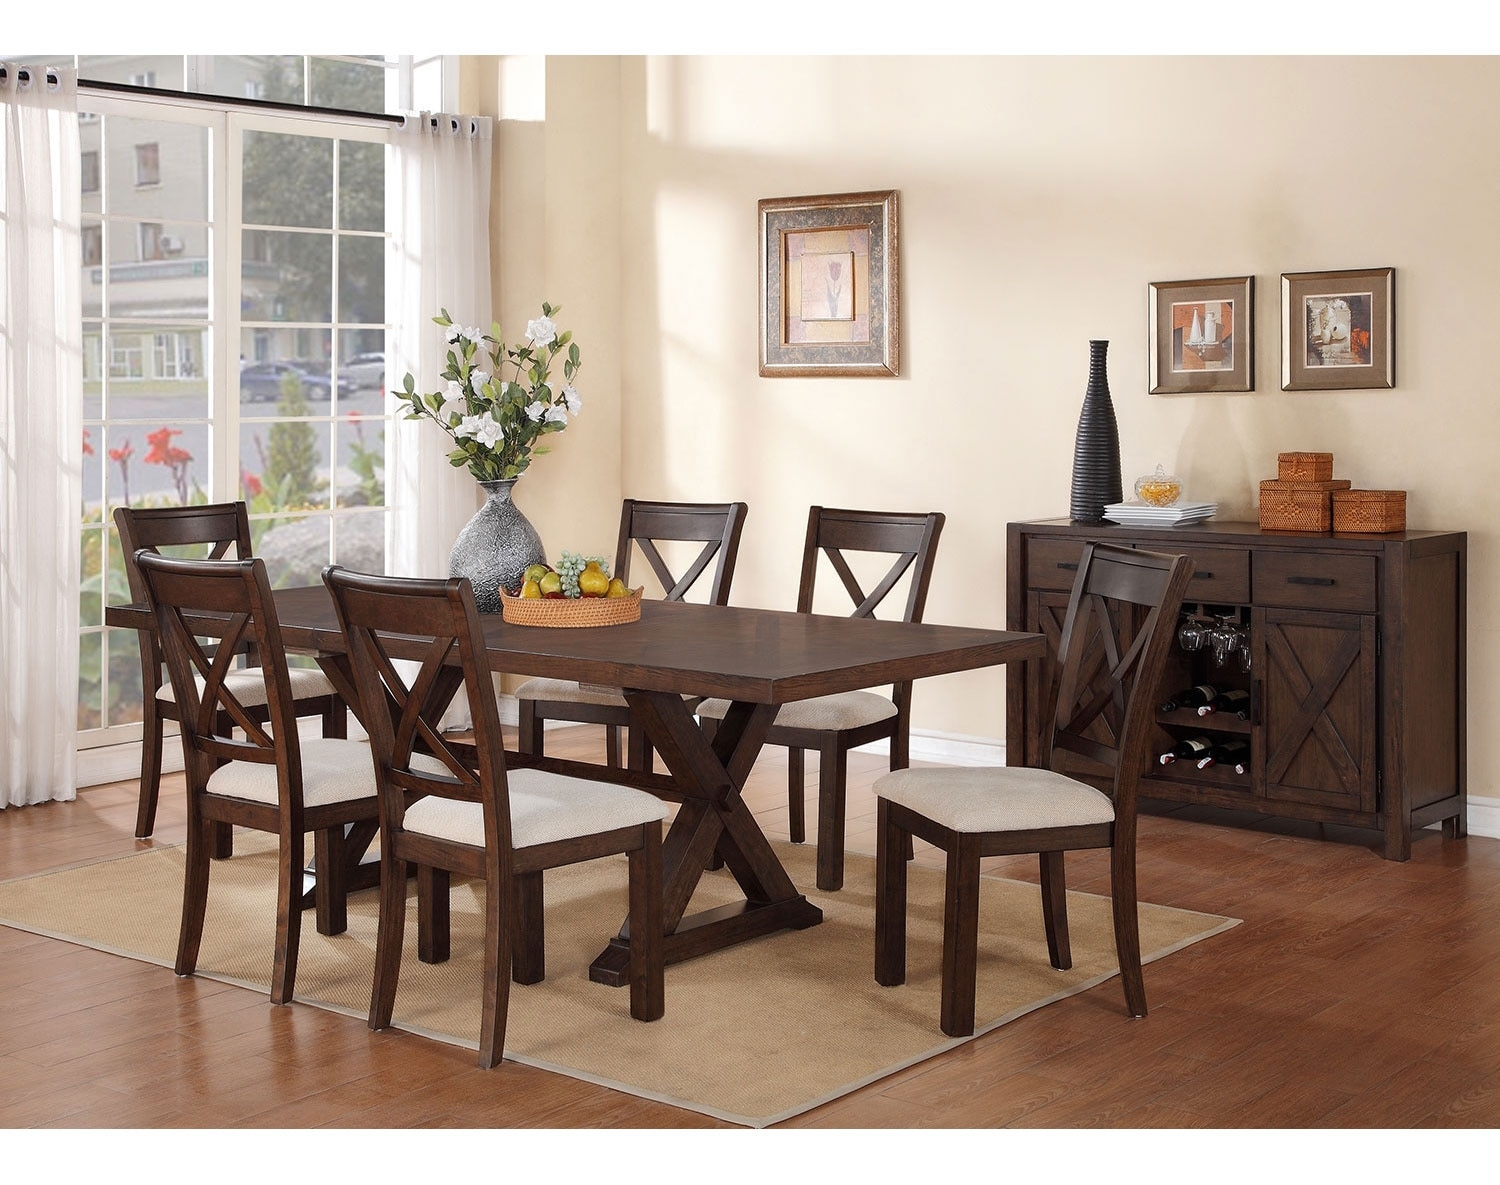 claira 7 piece dining room set rustic brown leon 39 s. Black Bedroom Furniture Sets. Home Design Ideas